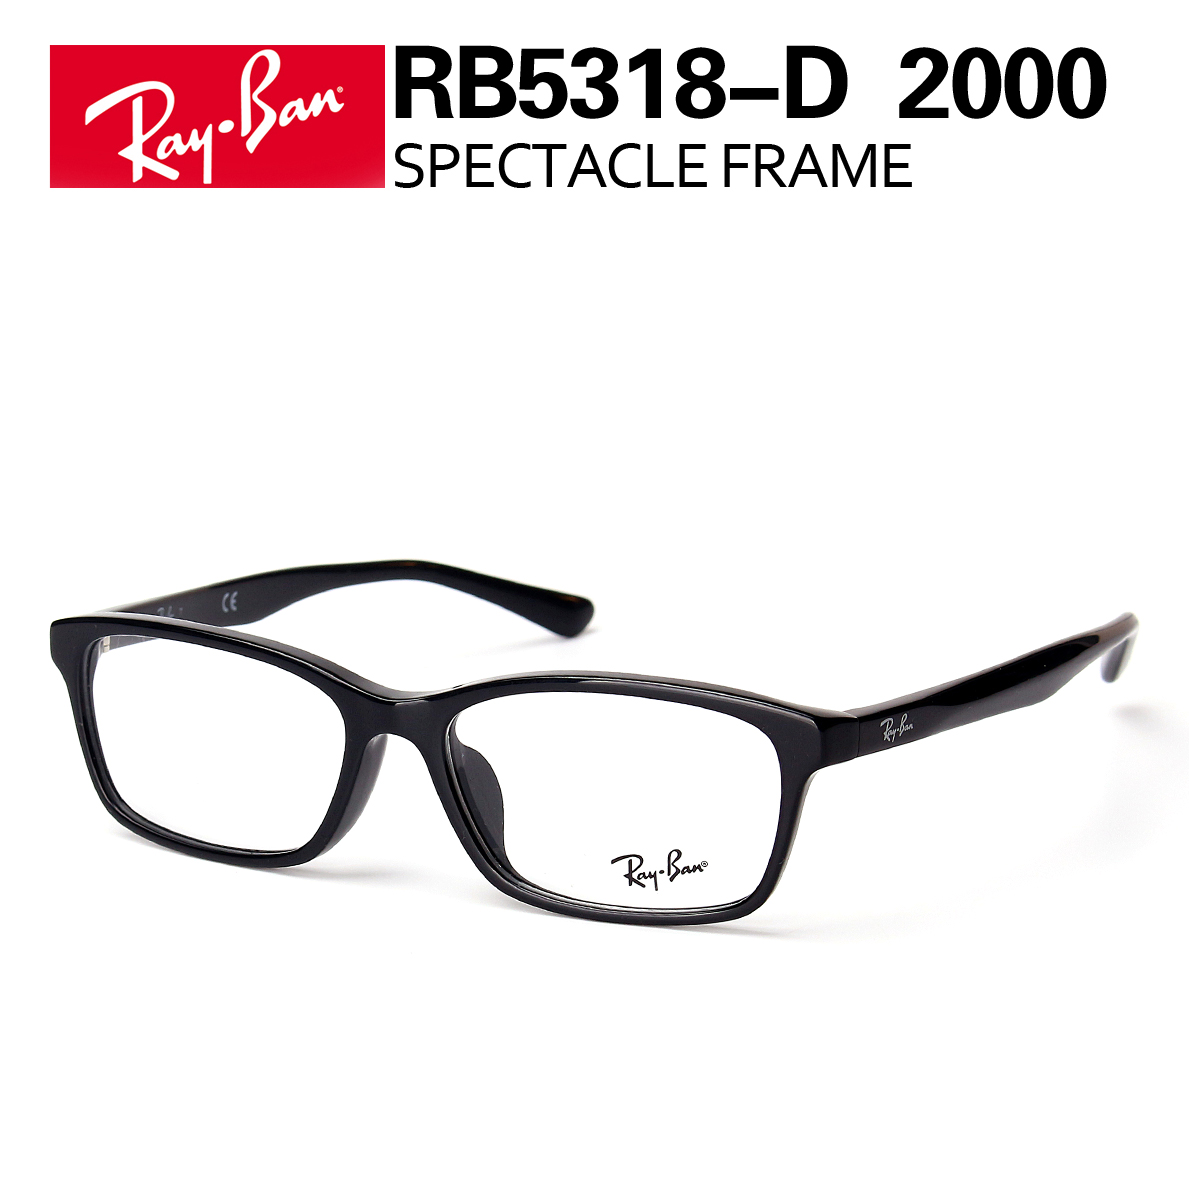 918c0fae24f47 Ray Ban RayBan glasses frame RB5318D full frame glasses frame myopia Ms.  male plate frame. Loading zoom